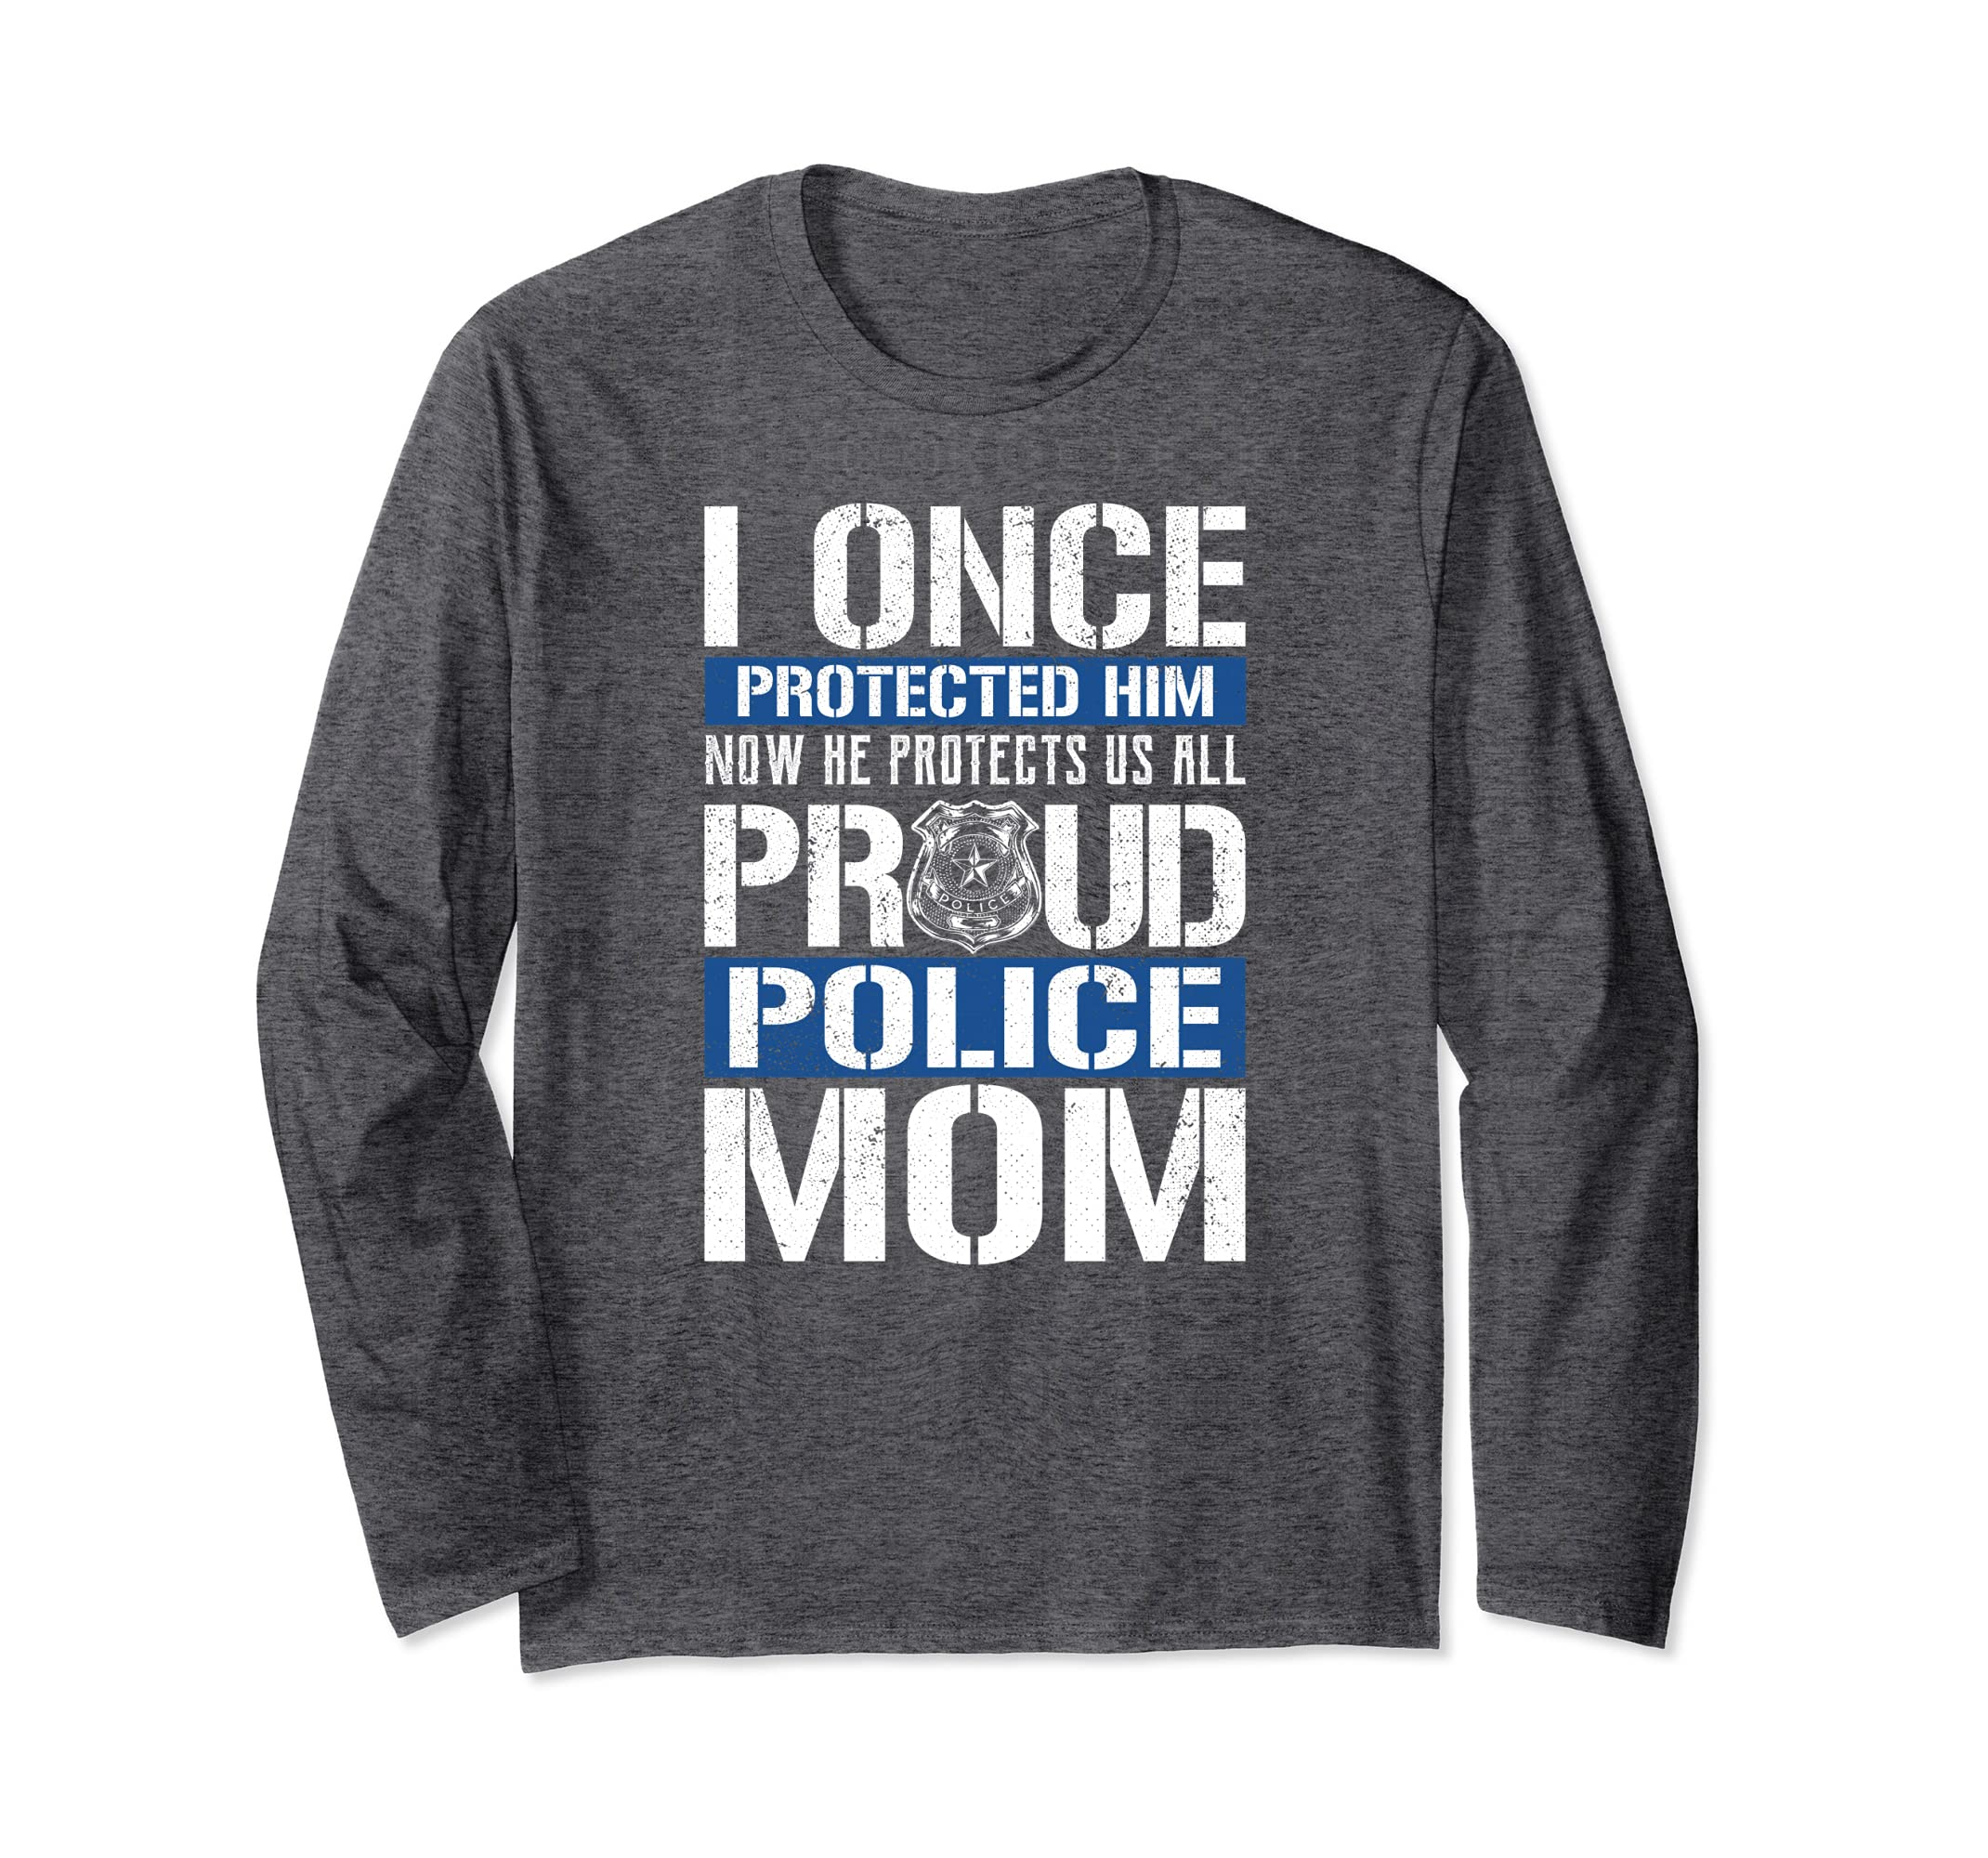 Proud Police Mom Tshirt Support Police Son-Bawle